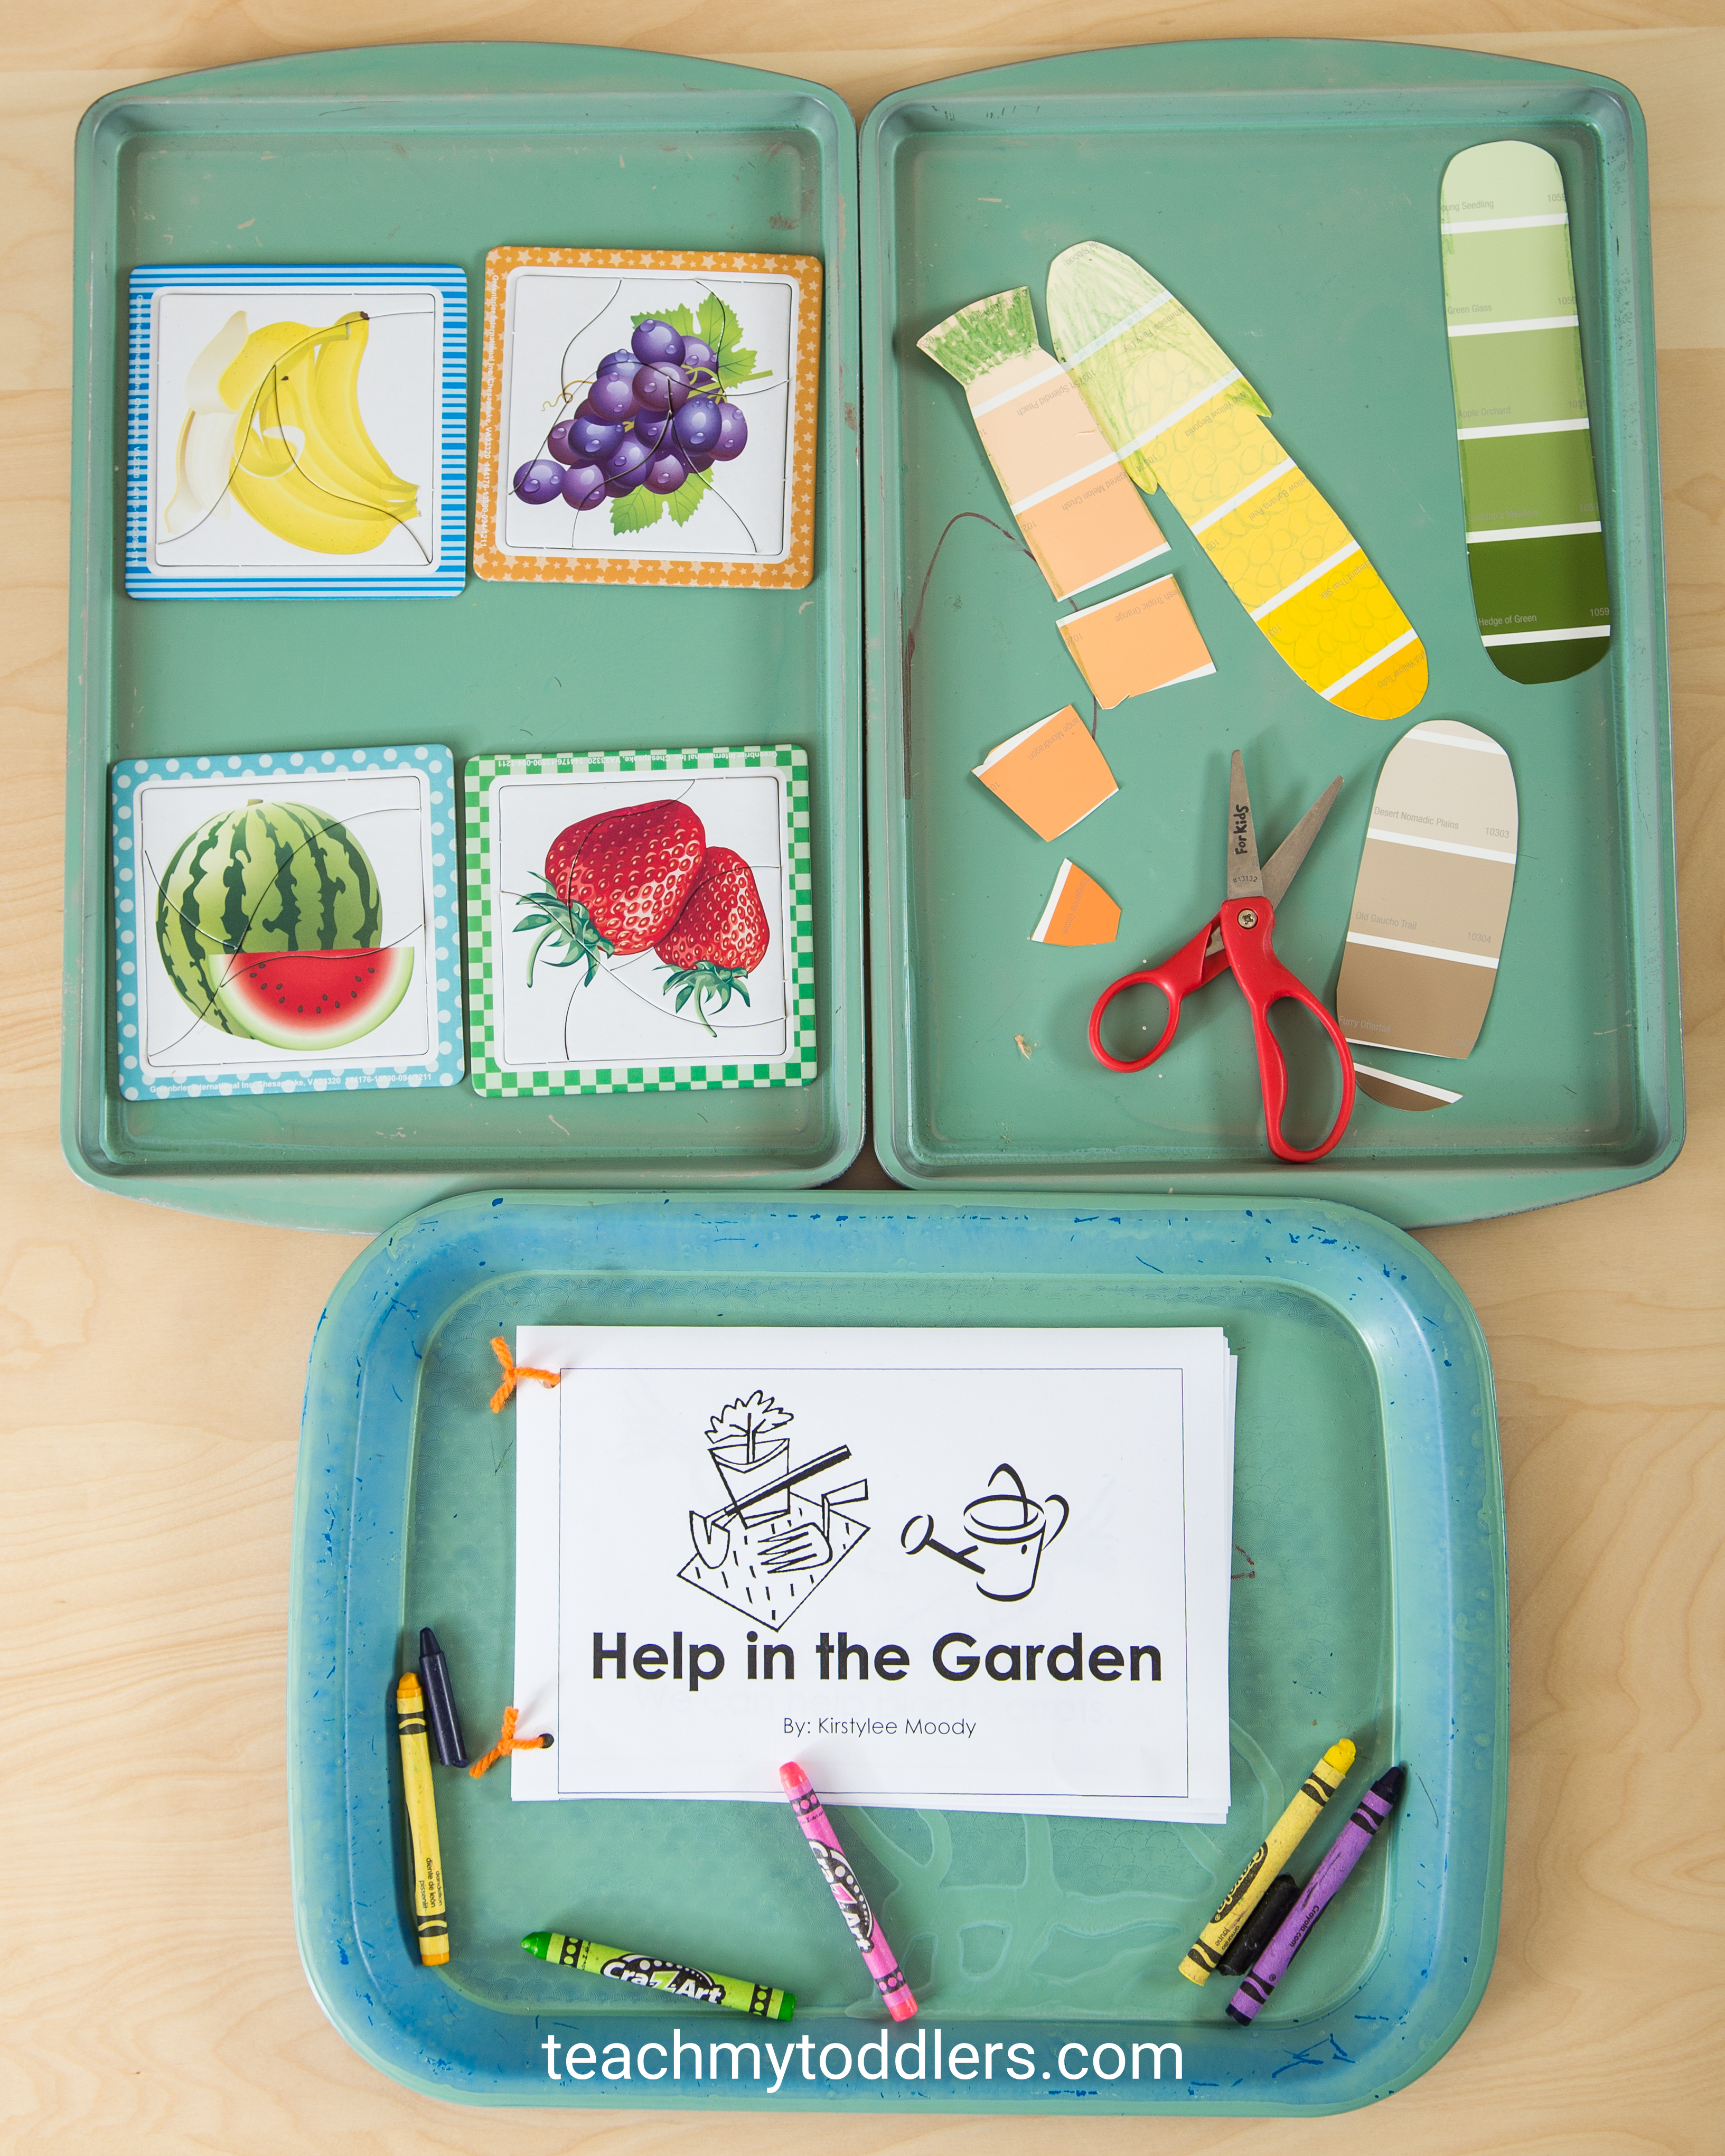 Use these awesome garden activities to teach toddlers about gardening